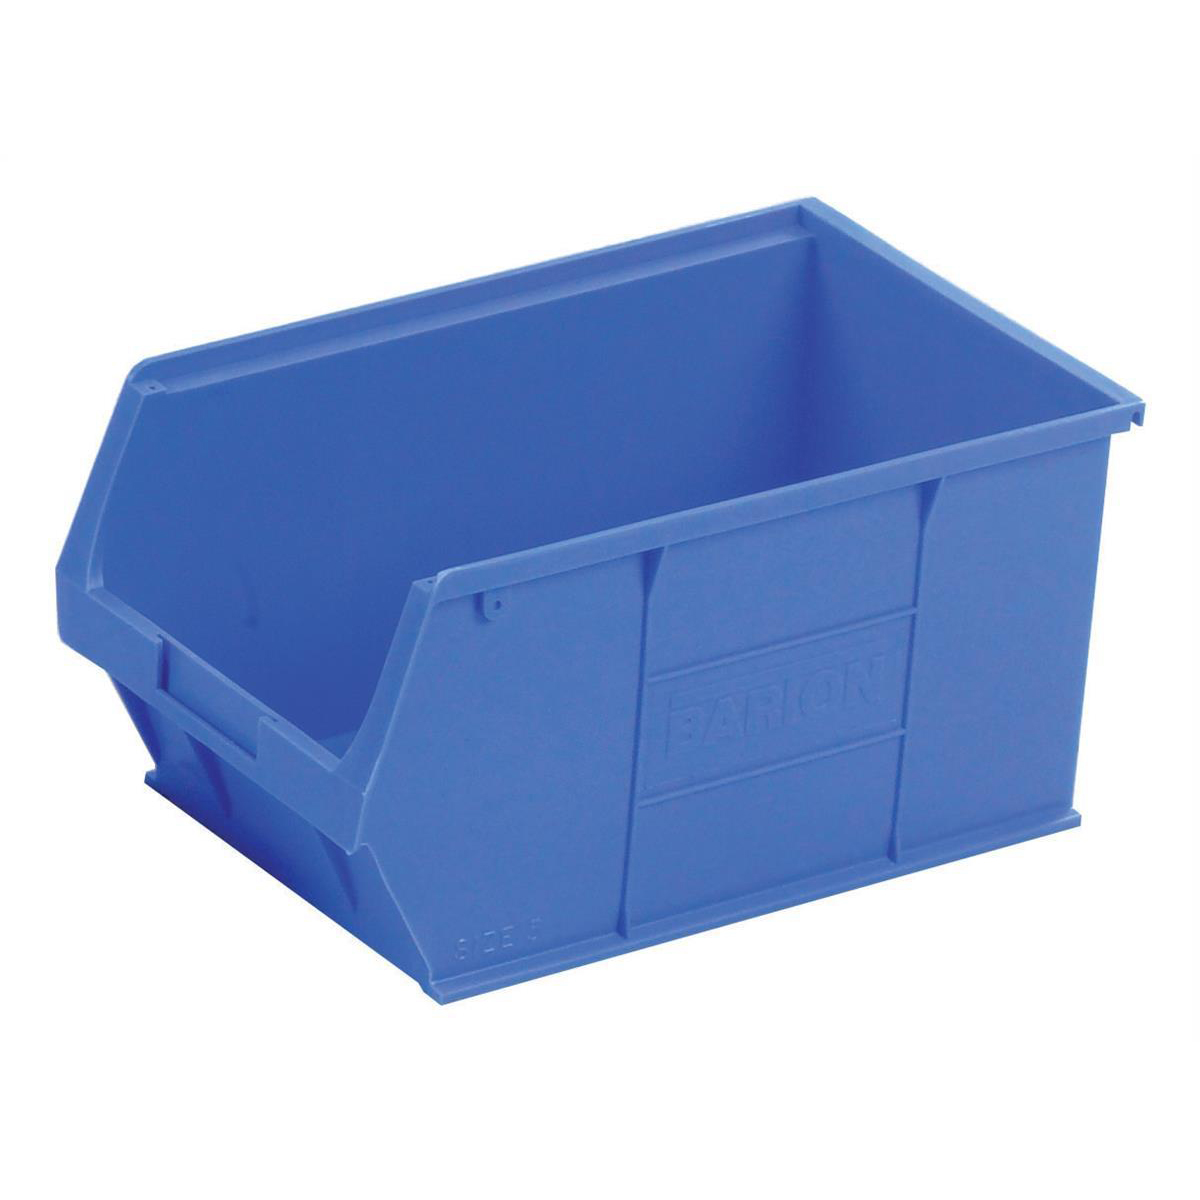 Containers Container Bin Heavy Duty Polypropylene W350xD205xH182mm Blue Pack 10